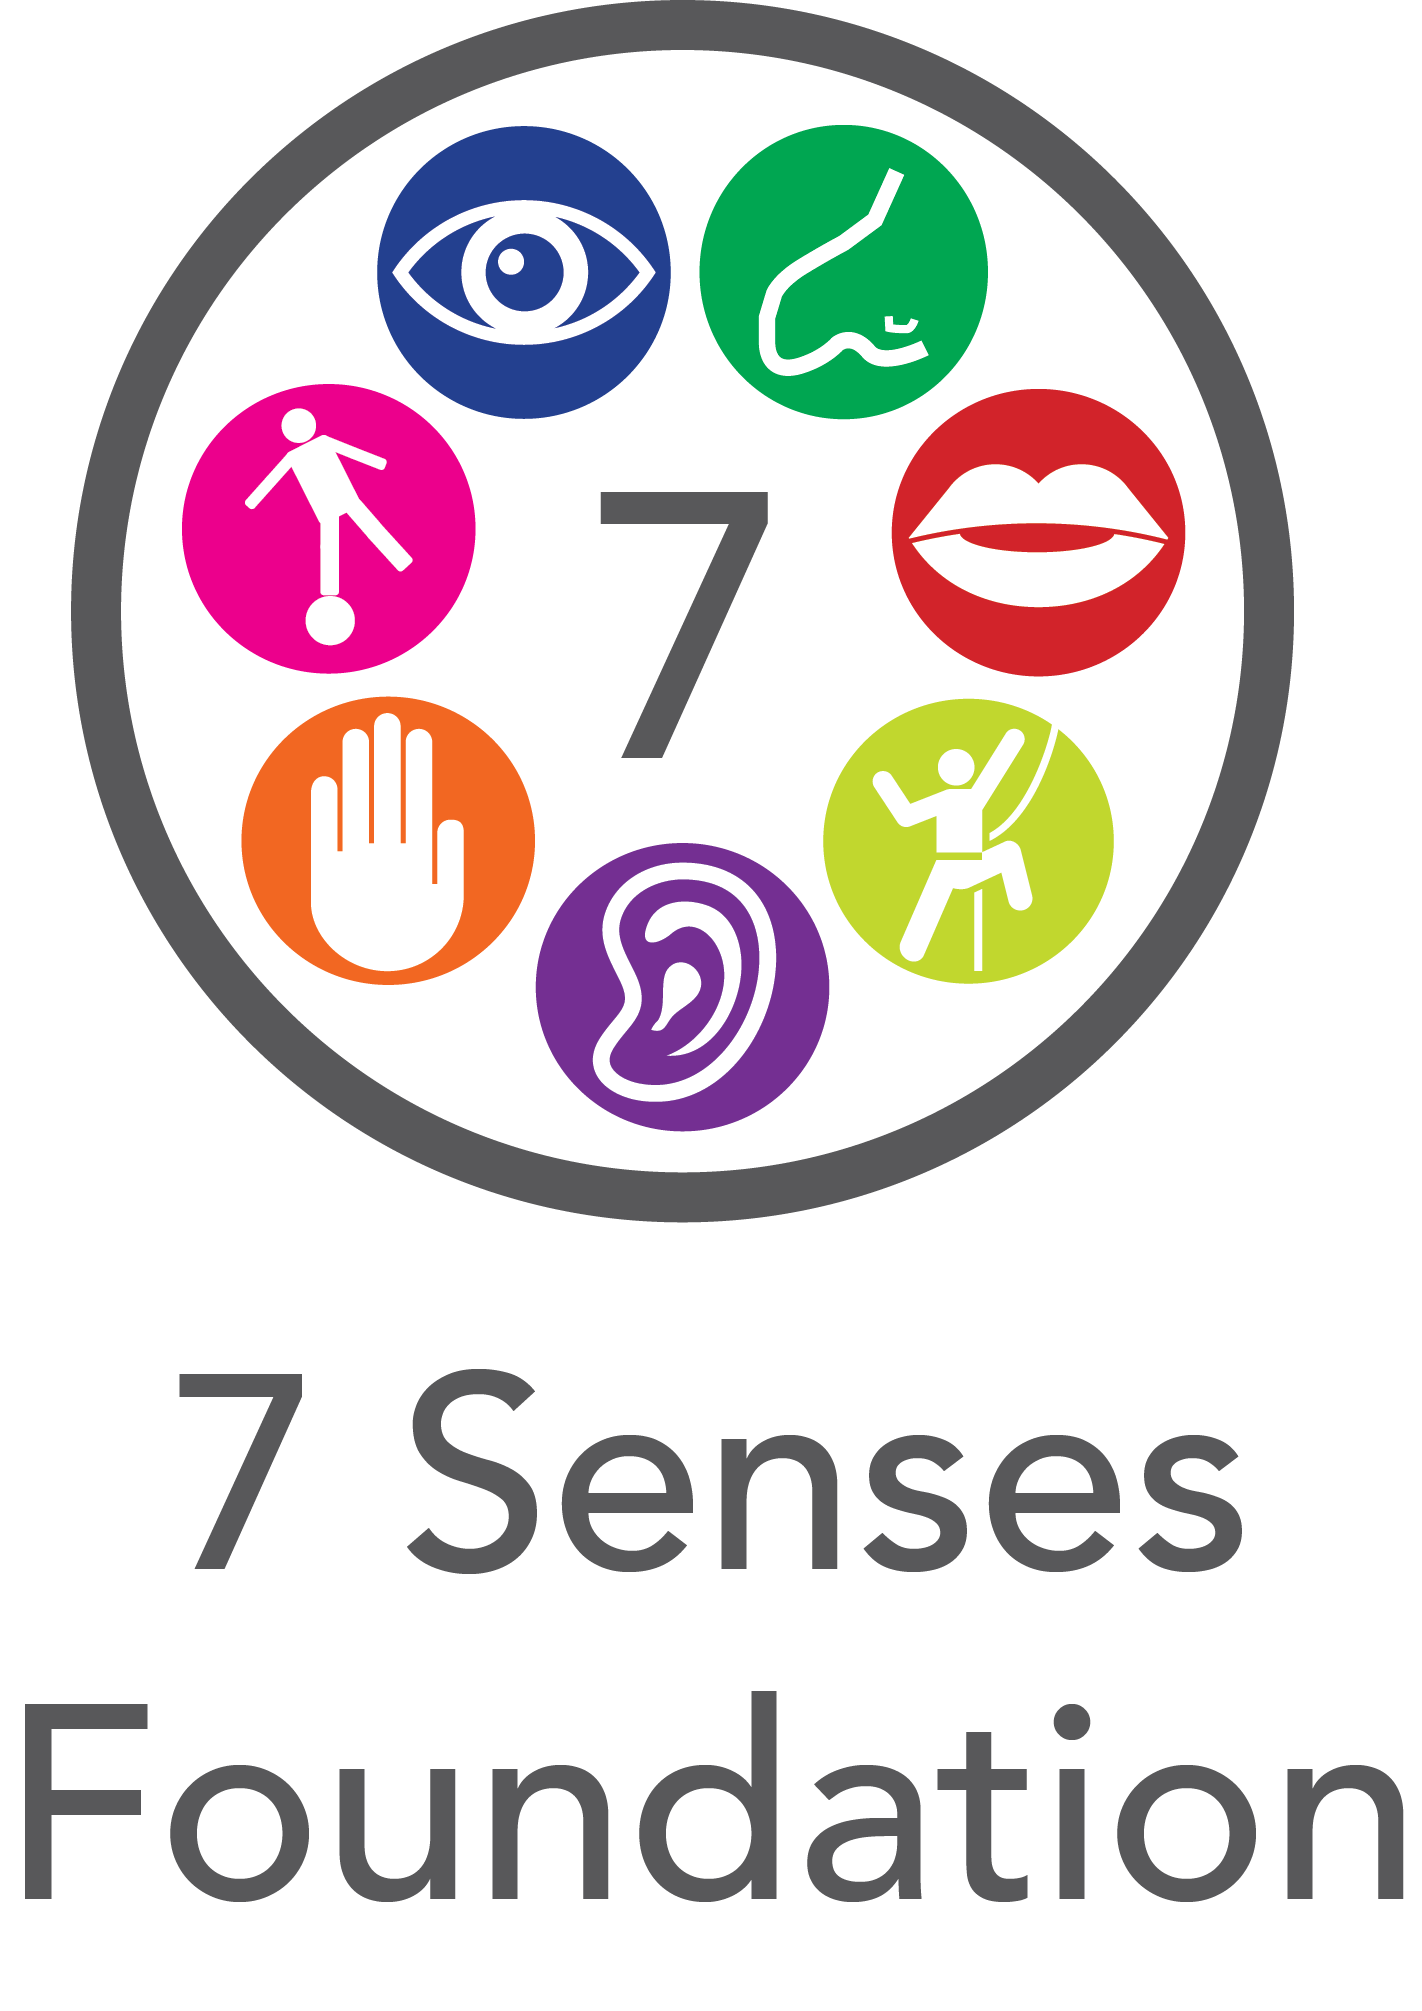 7 Senses Foundation